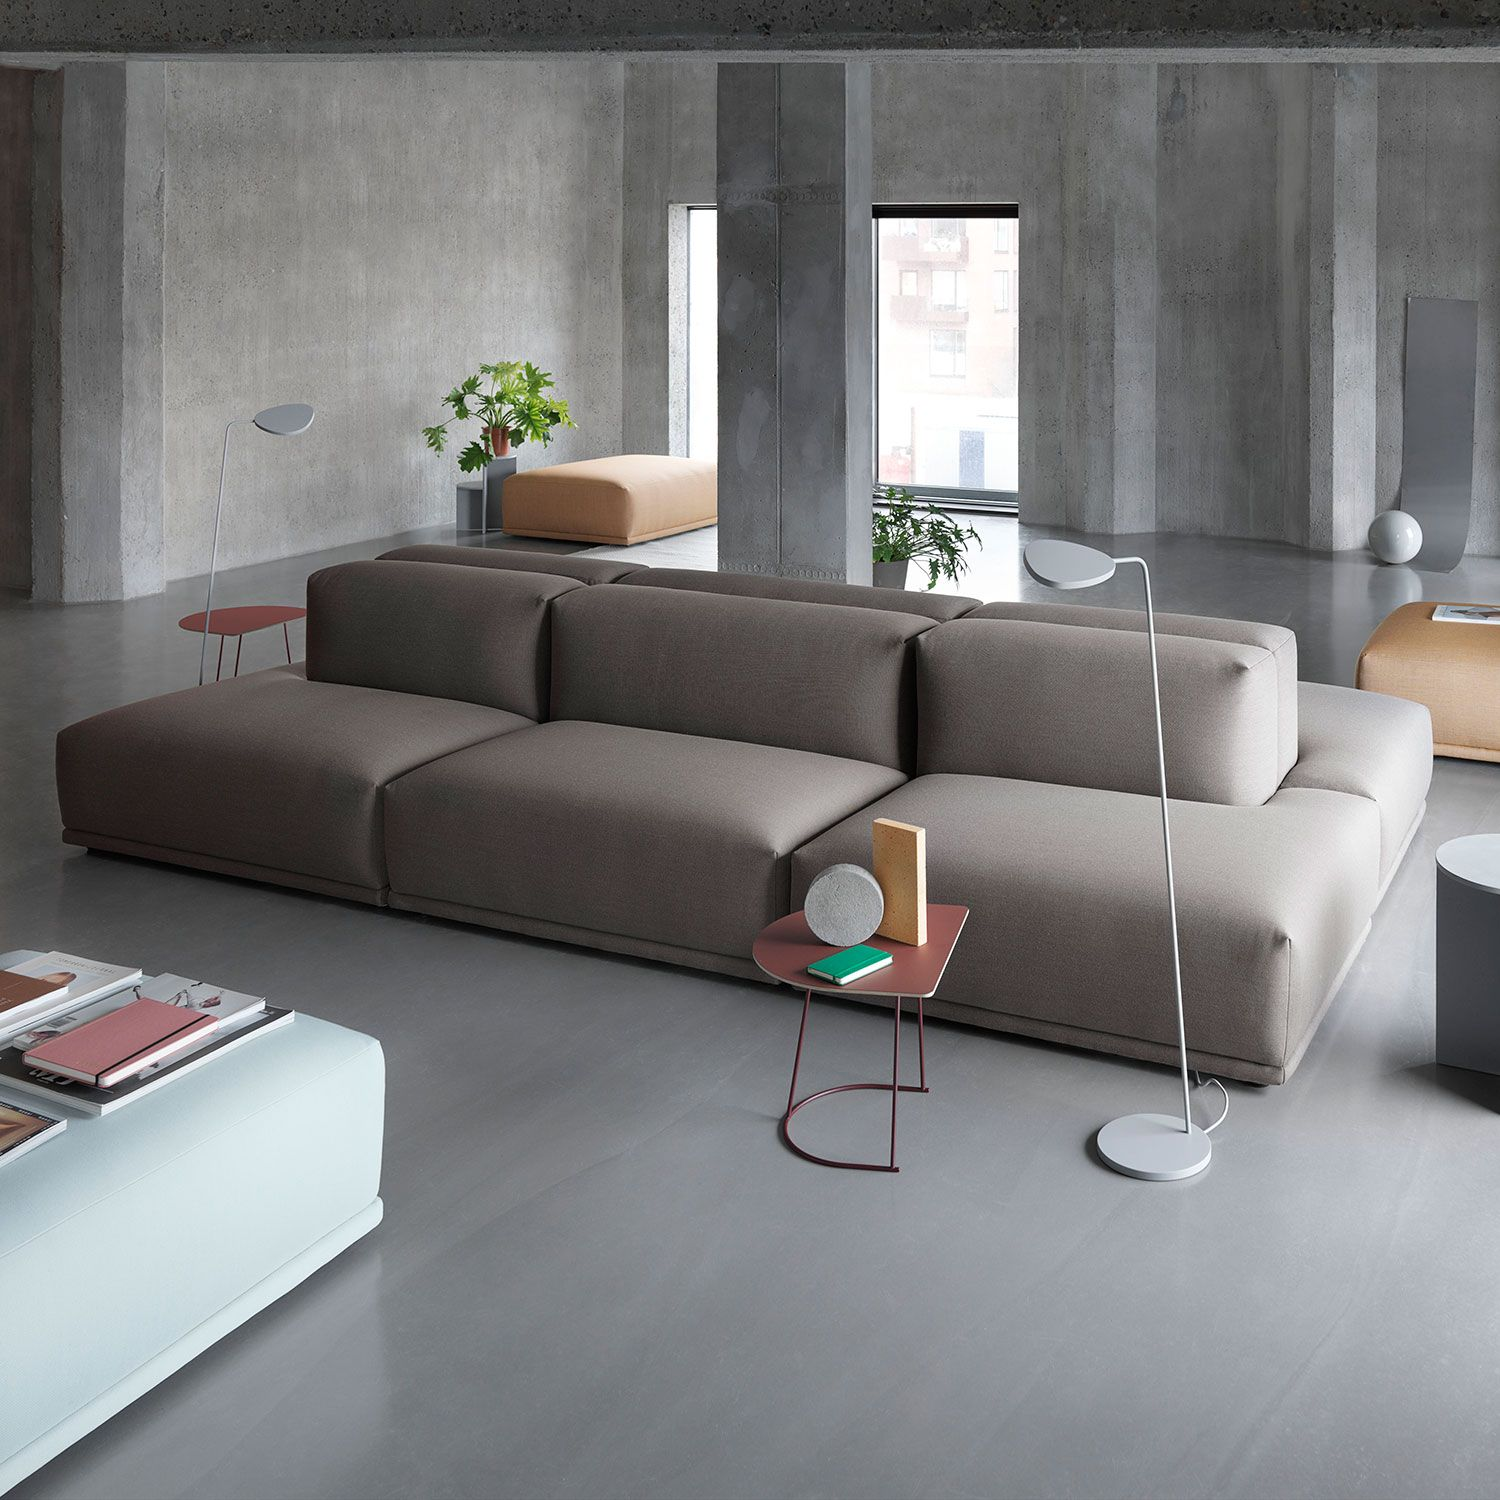 modular sofa inspiration from muuto with 11 possible modules the rh pinterest com